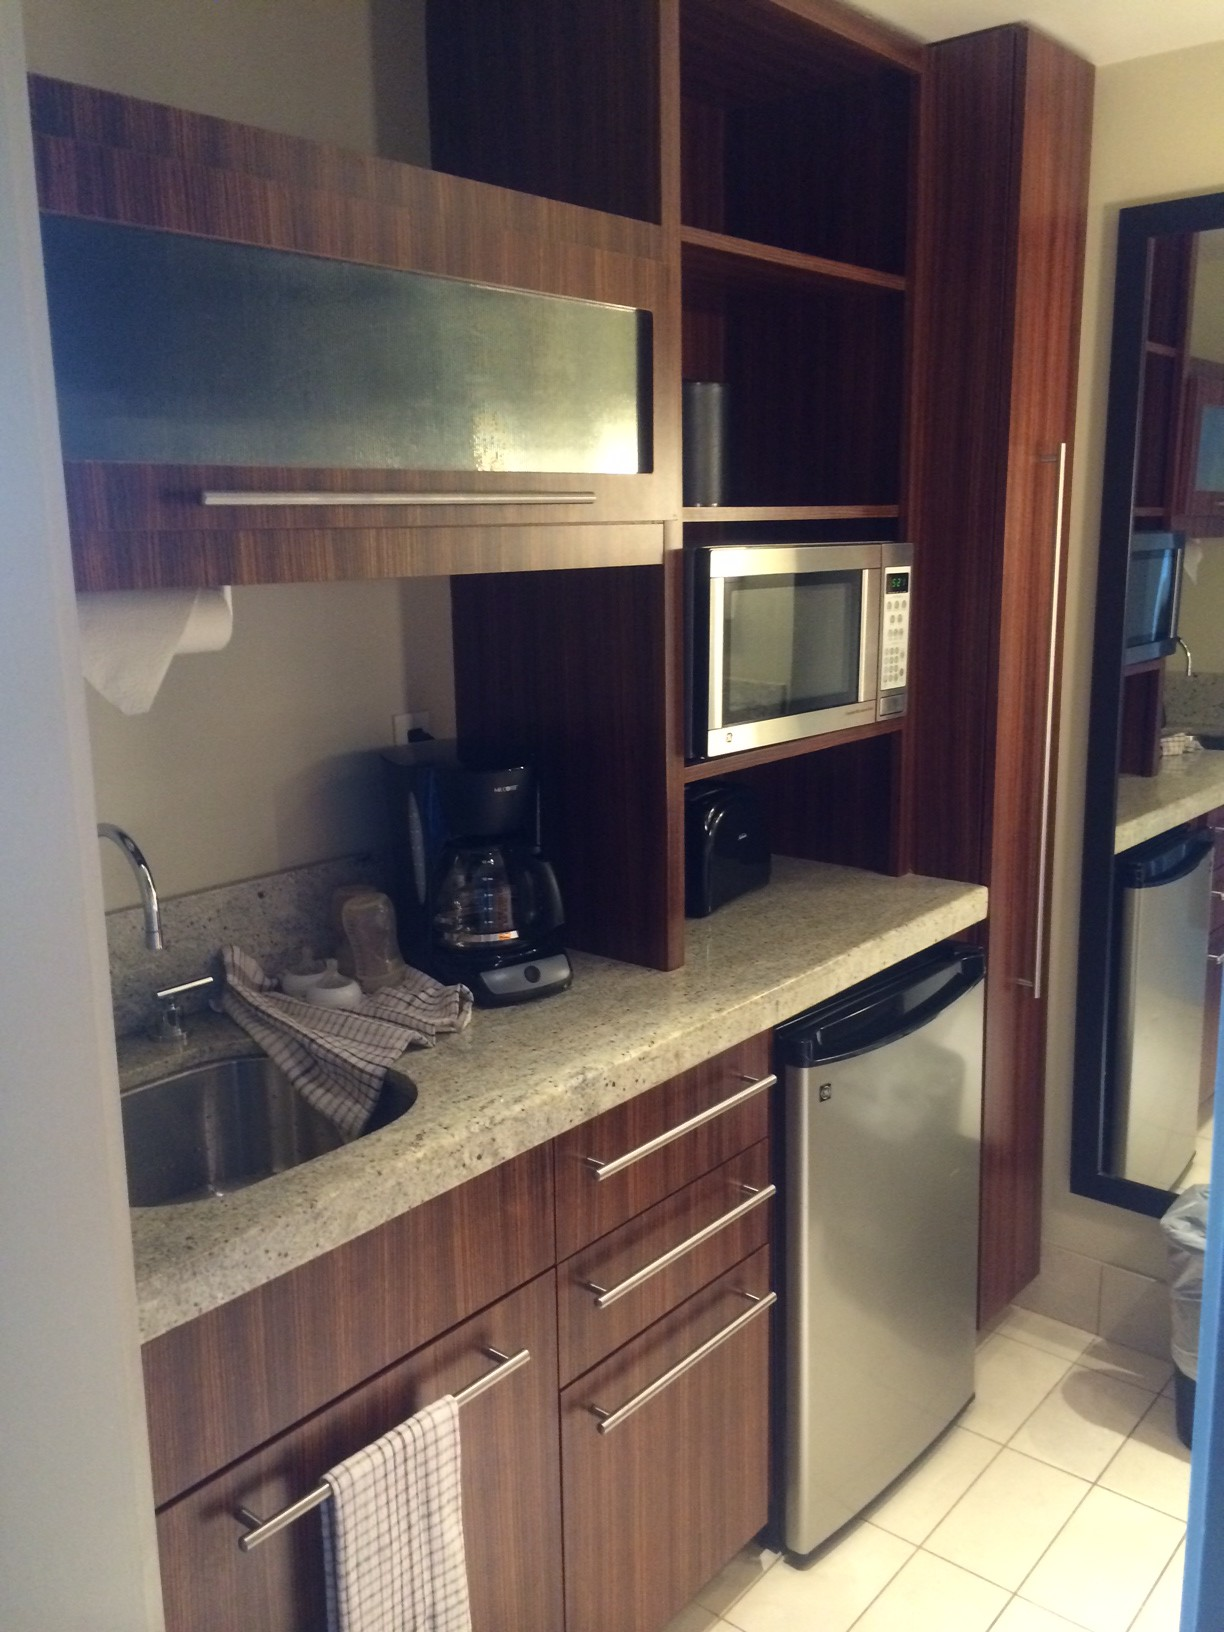 Kitchenette area of the Deluxe Studio.